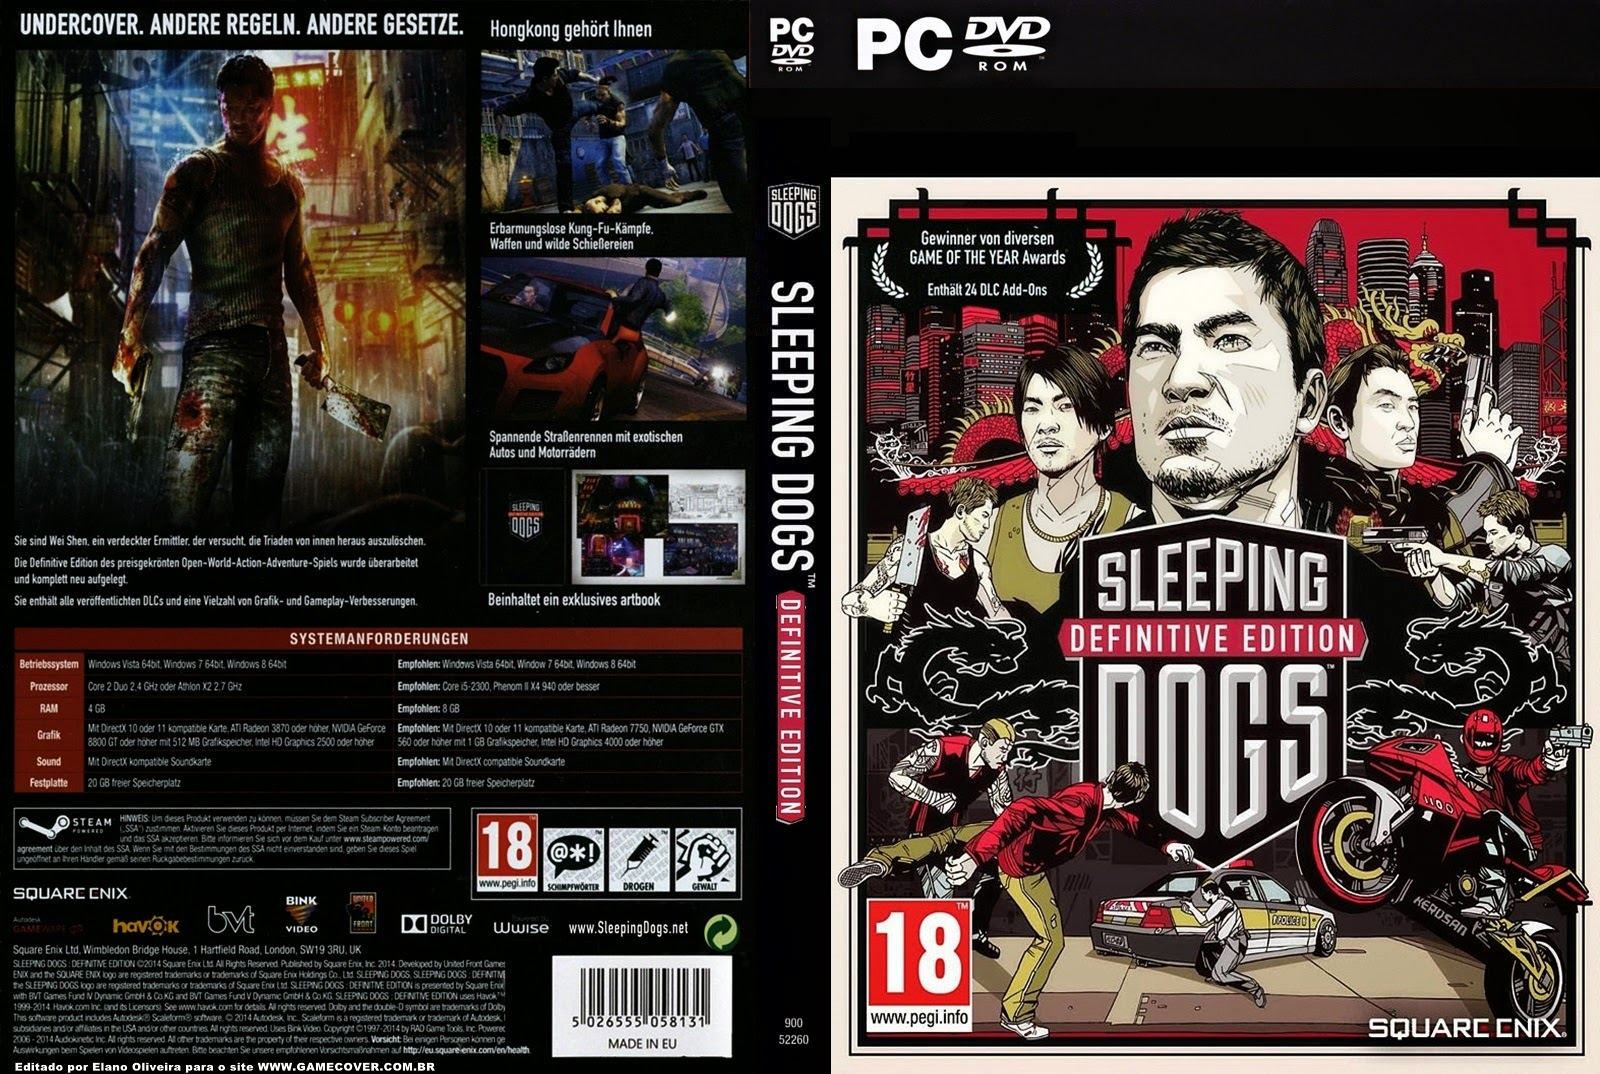 Sleeping dogs definitive edition v1. 00 trainer +9 youtube.